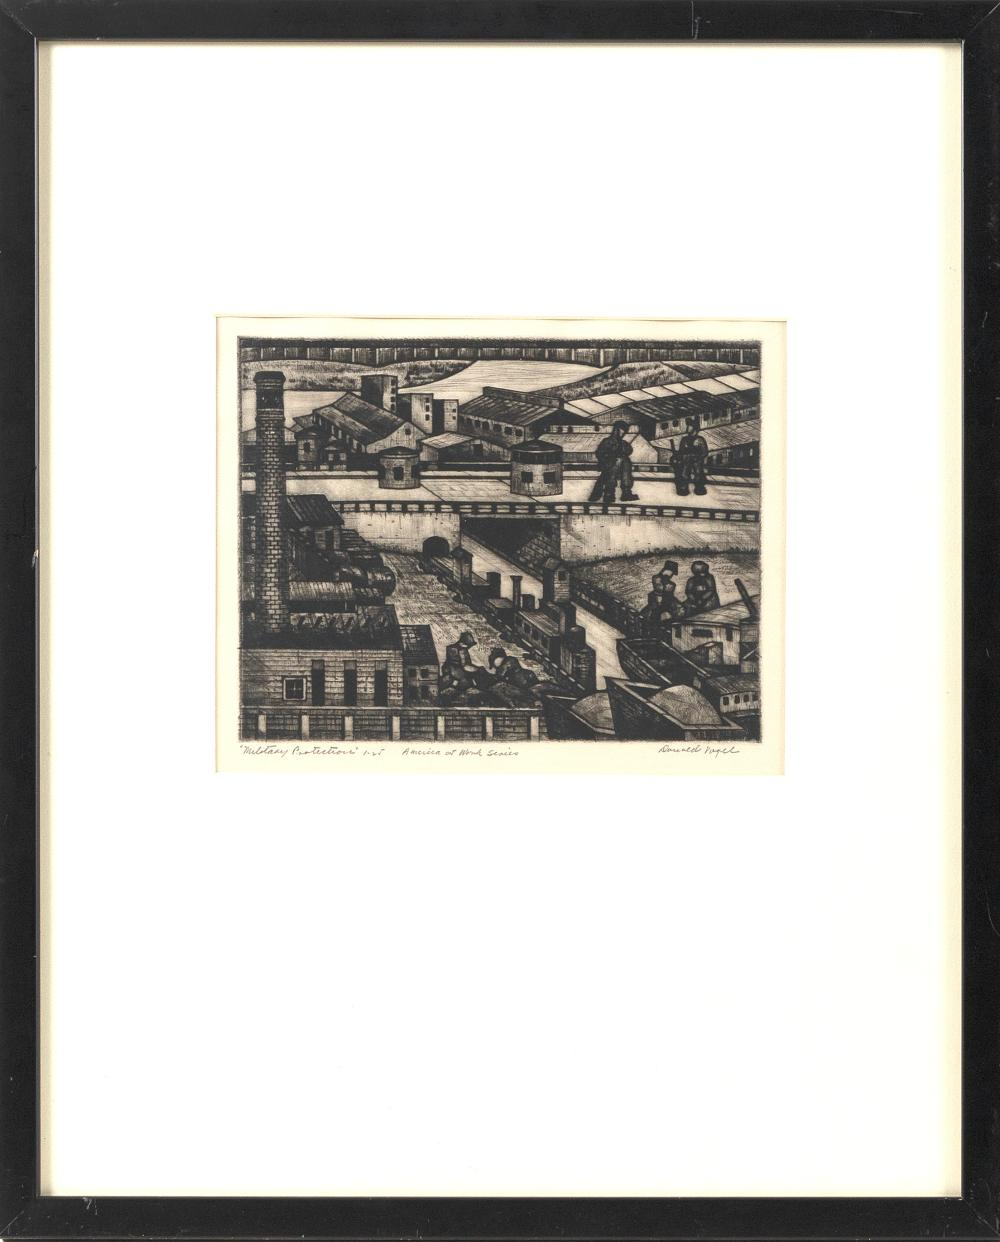 """DONALD VOGEL (New York/Poland, 1902-), """"Military Protection"""", Dry point etching, 8.75"""" x 6.75"""" to the plate line. Framed 21"""" x 17"""". Paper size 9.25"""" x 11.25""""."""